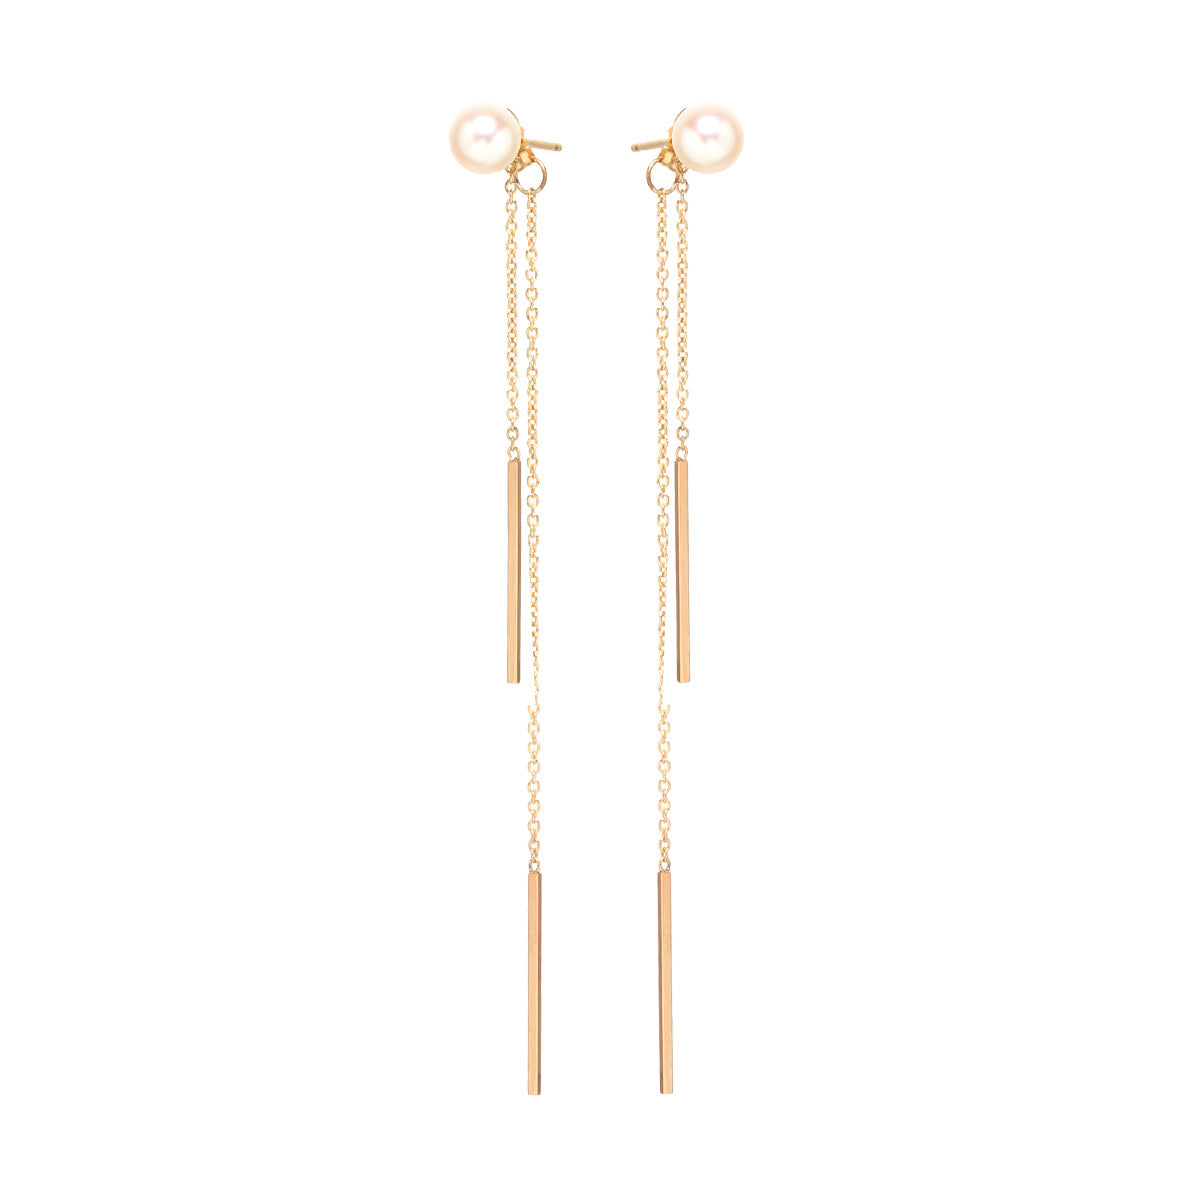 14K pearl and double bar drop earrings